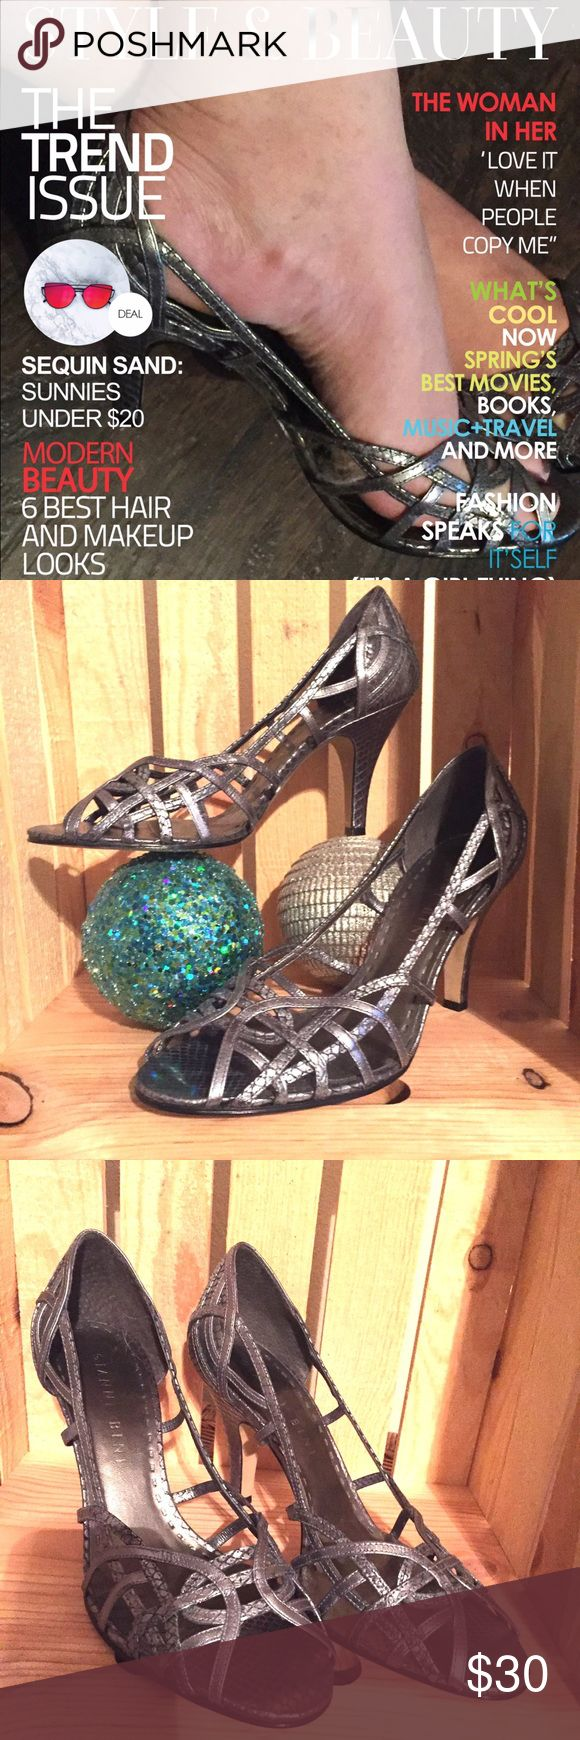 "👠 Gianni Bini gun metal strappy 🎉 heels! Gianni Bini gun metal silver strappy heels with snake pattern. 3"" heels. Never worn. Size 9.5 M. Genuine leather upper. Gianni Bini Shoes Heels"